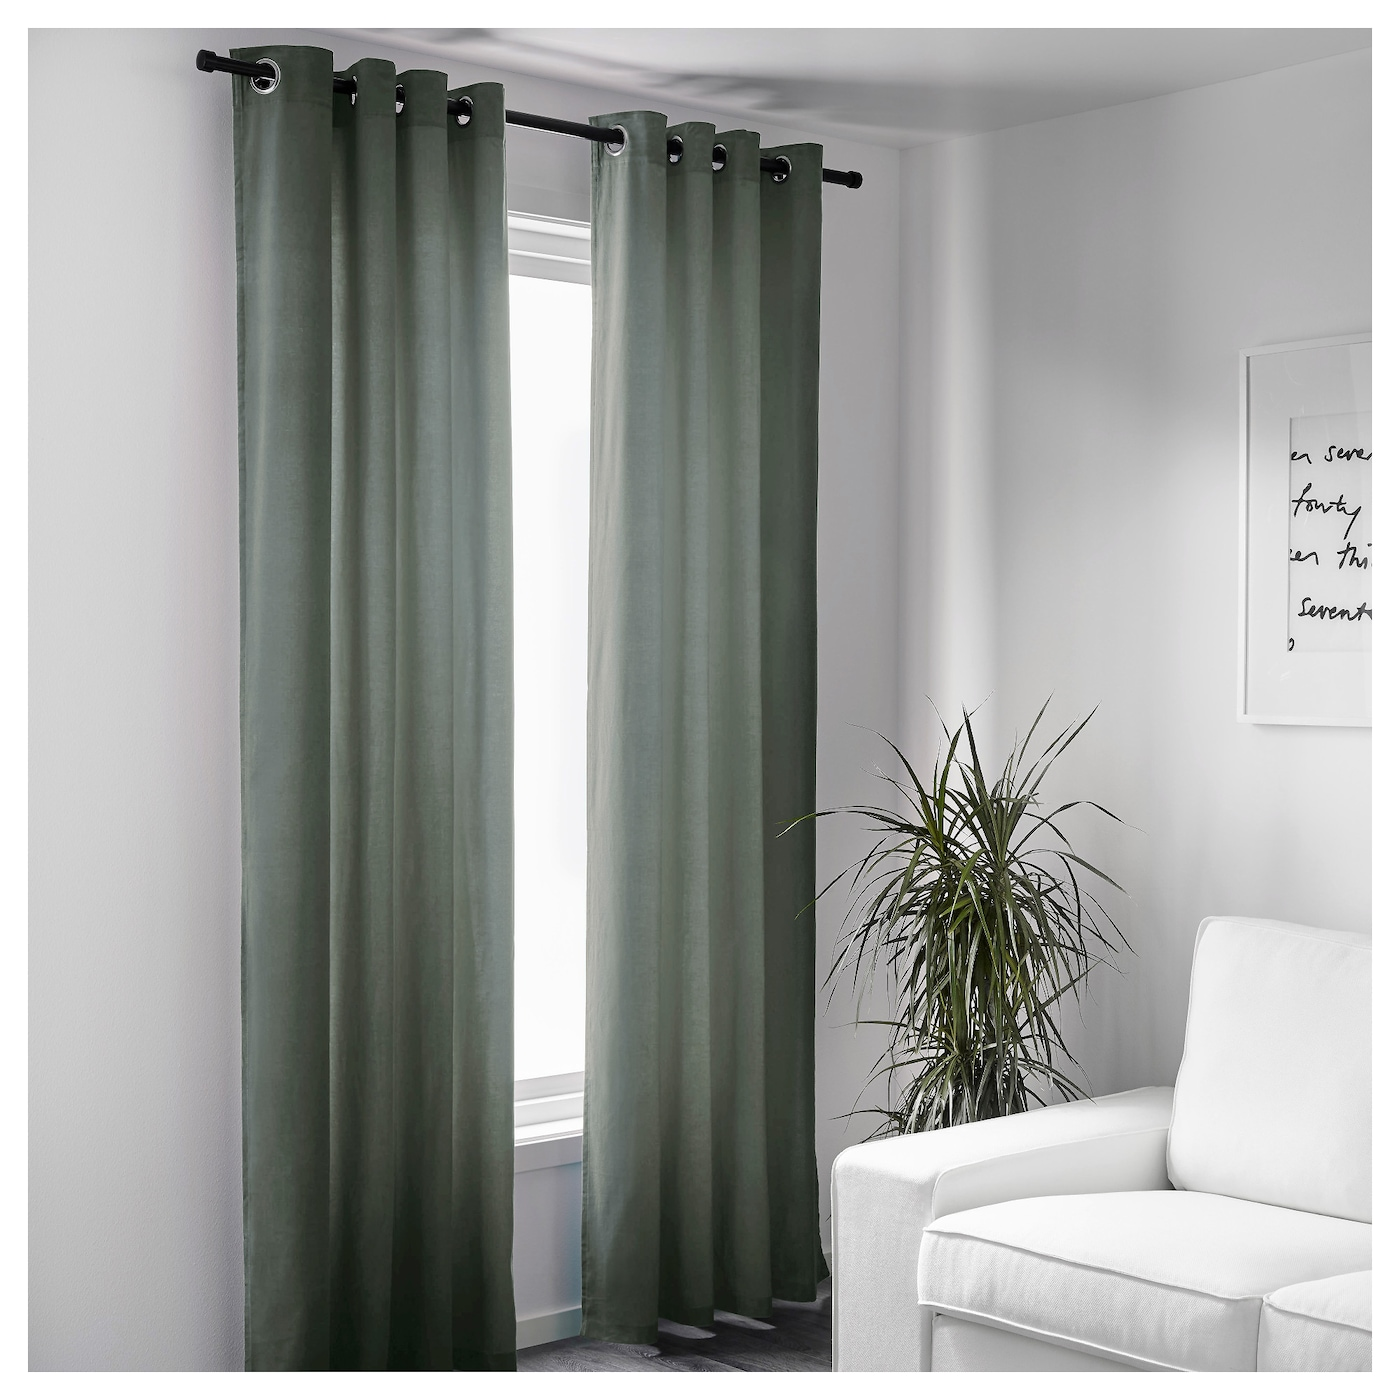 sanela curtains 1 pair grey green 140 x 250 cm ikea. Black Bedroom Furniture Sets. Home Design Ideas